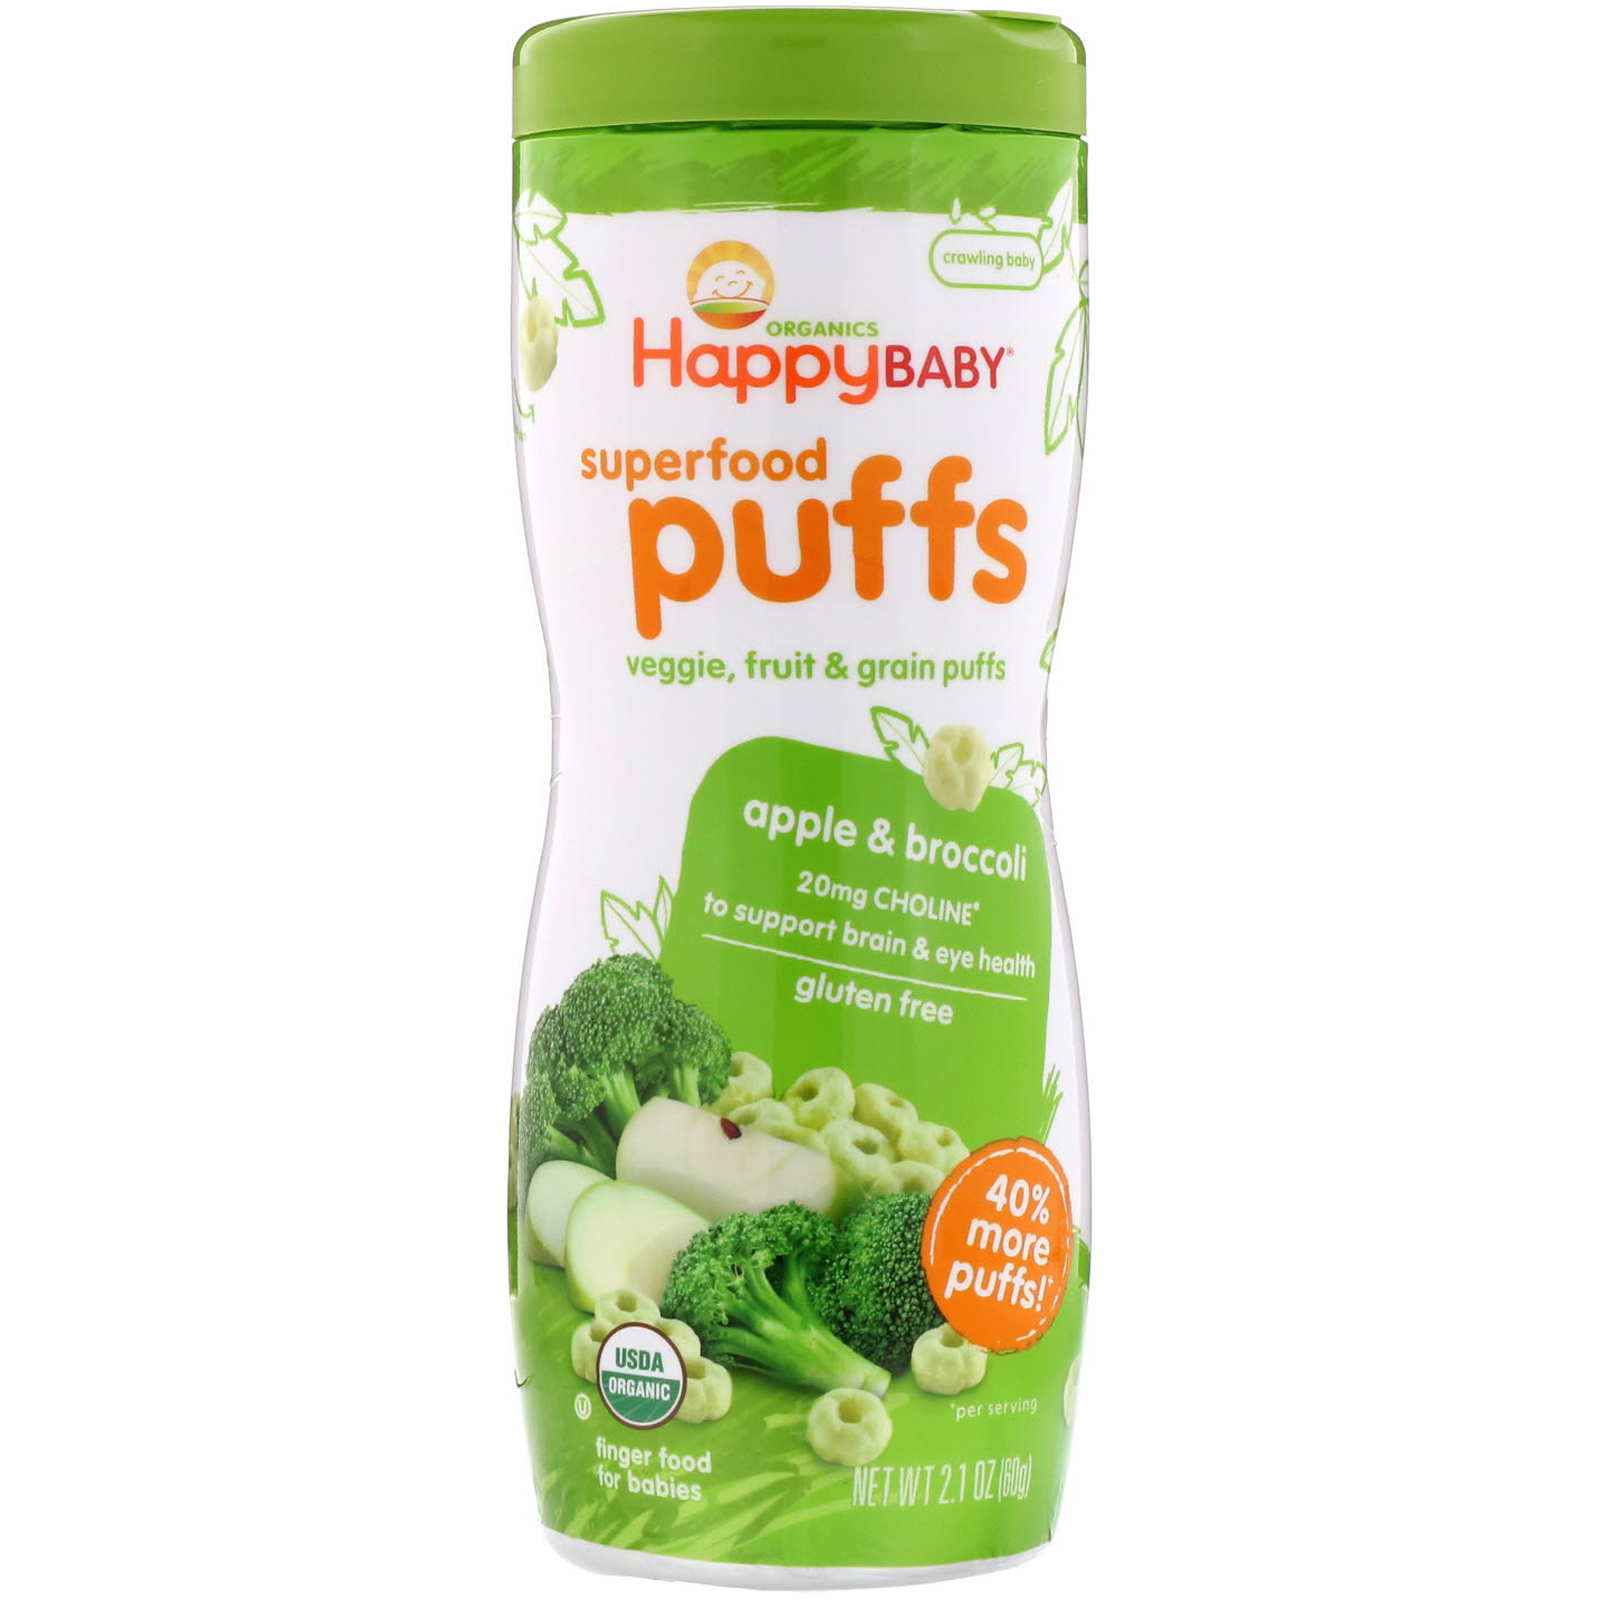 Happy Family Organics, Superfood Puffs